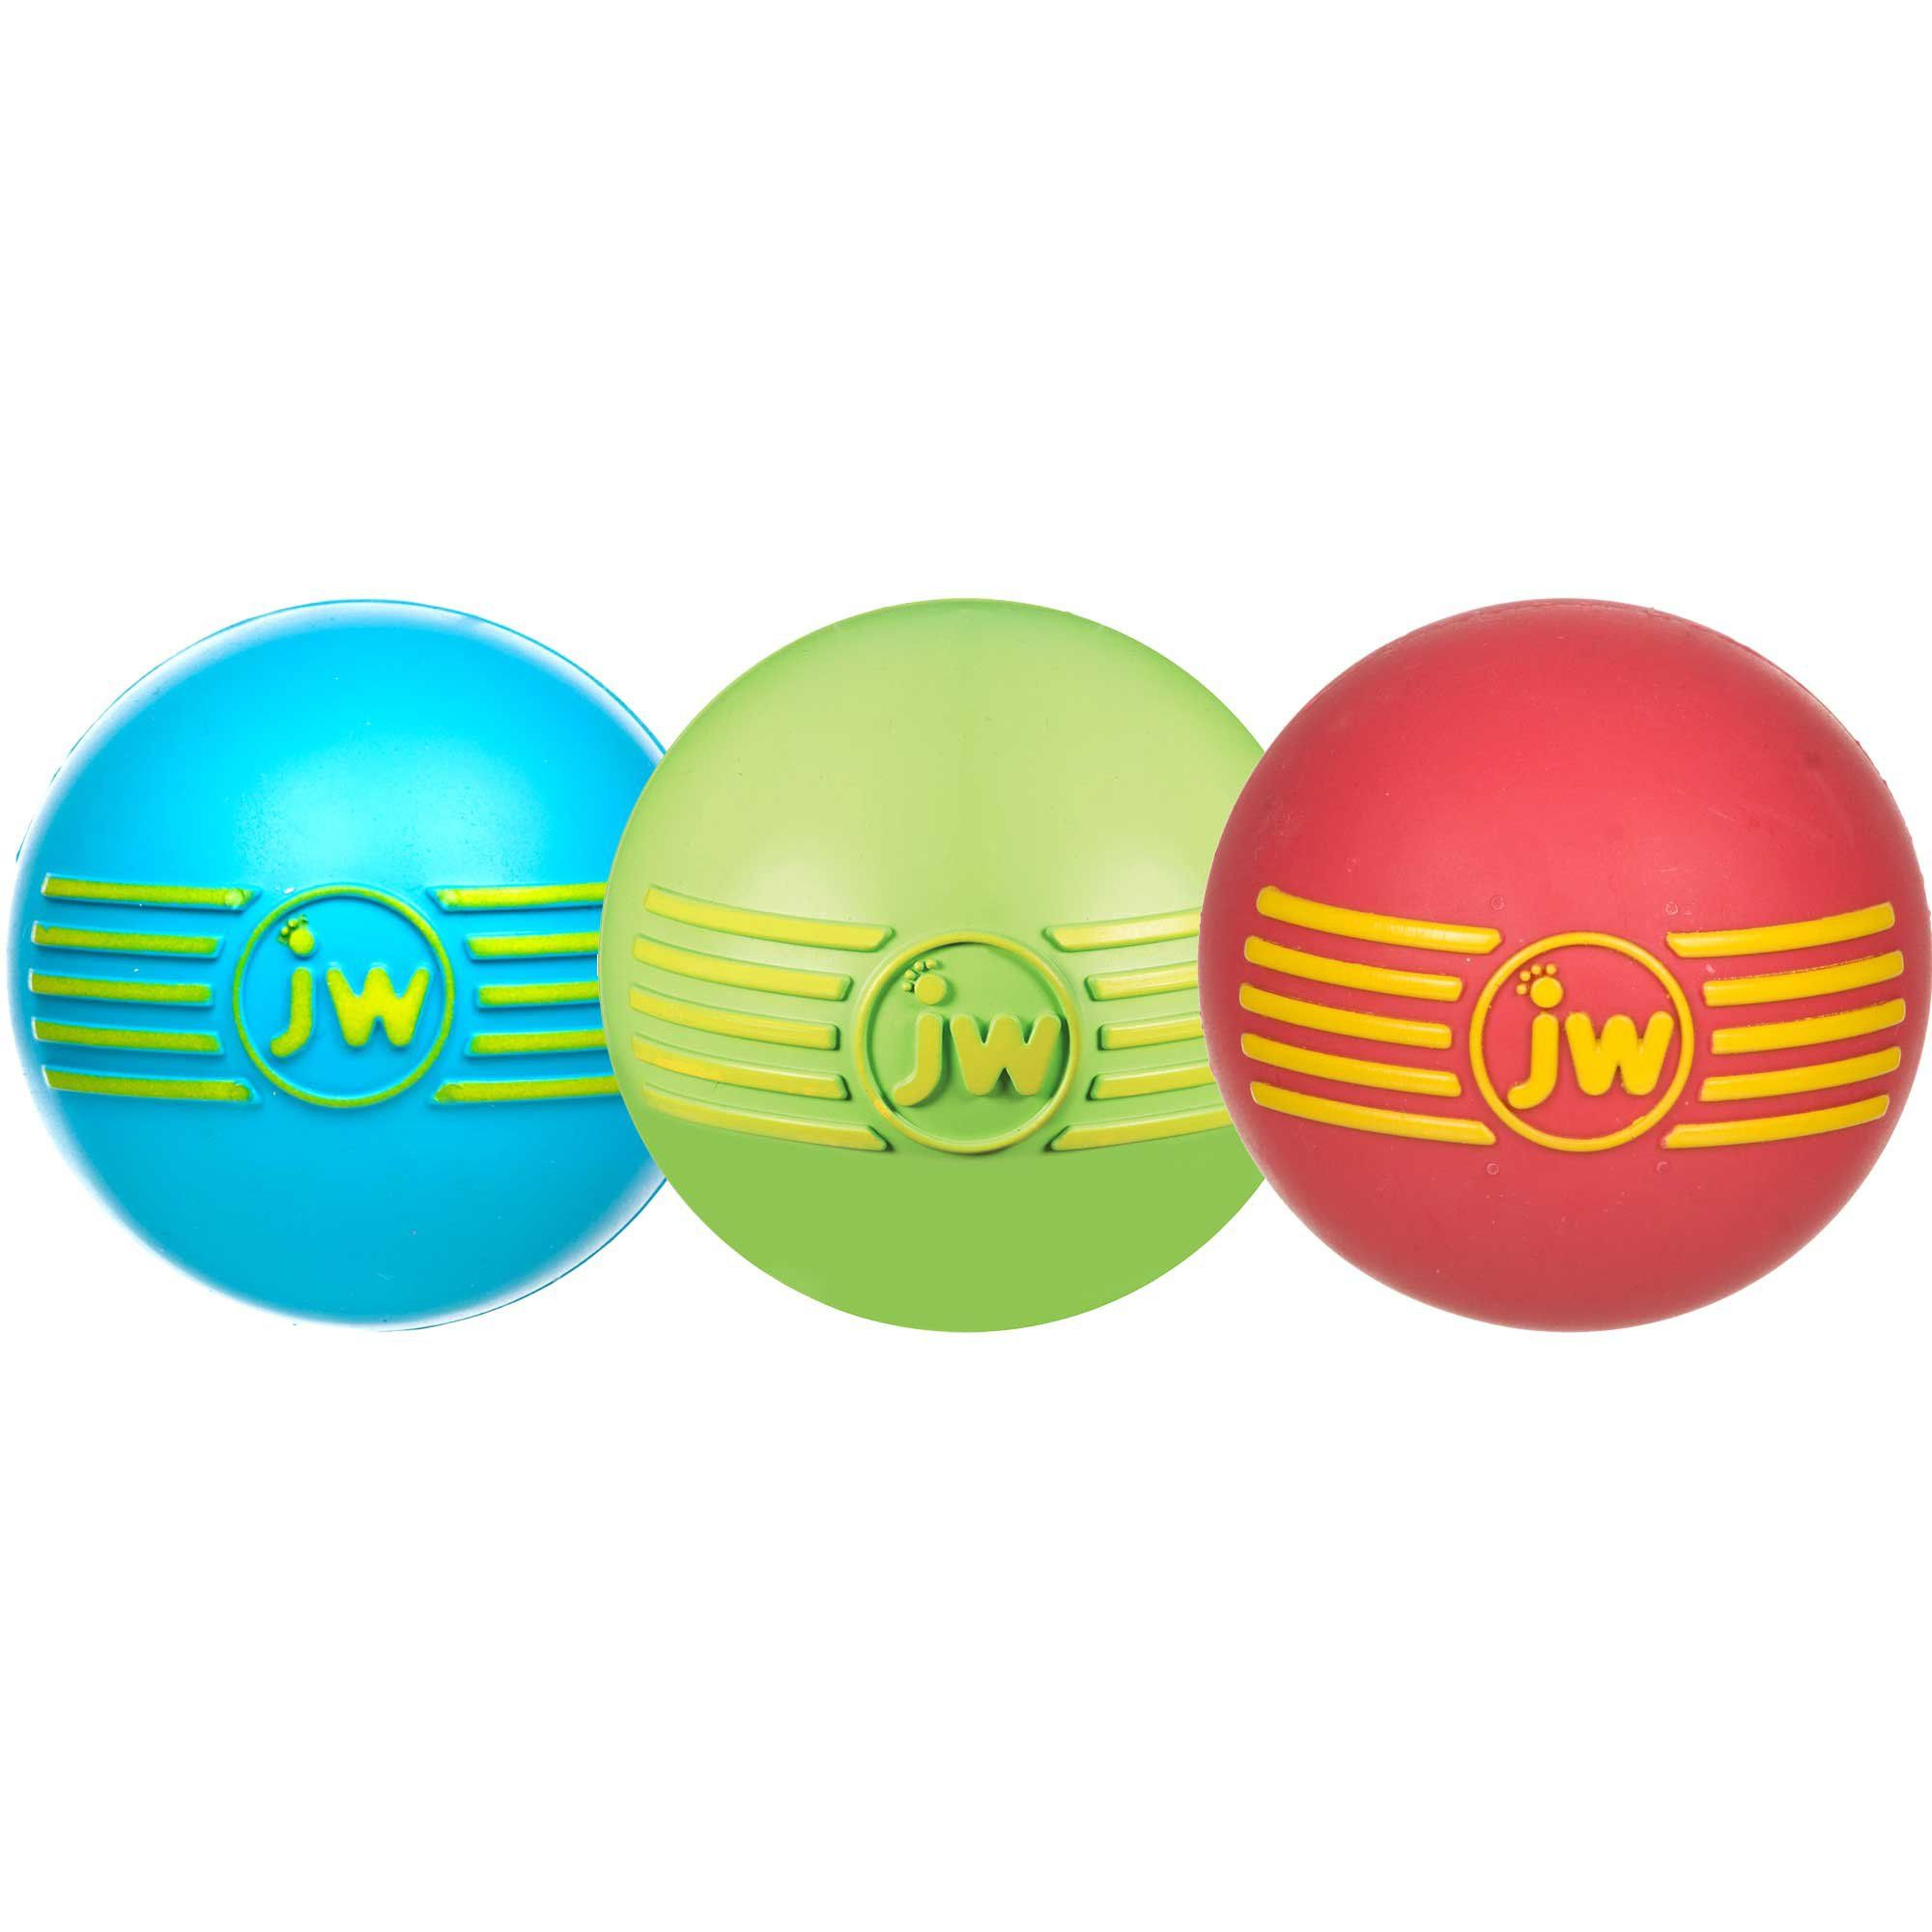 Jw Pet Isqueak Rubber Ball Dog Toy Small Dog Toys Toy Puppies